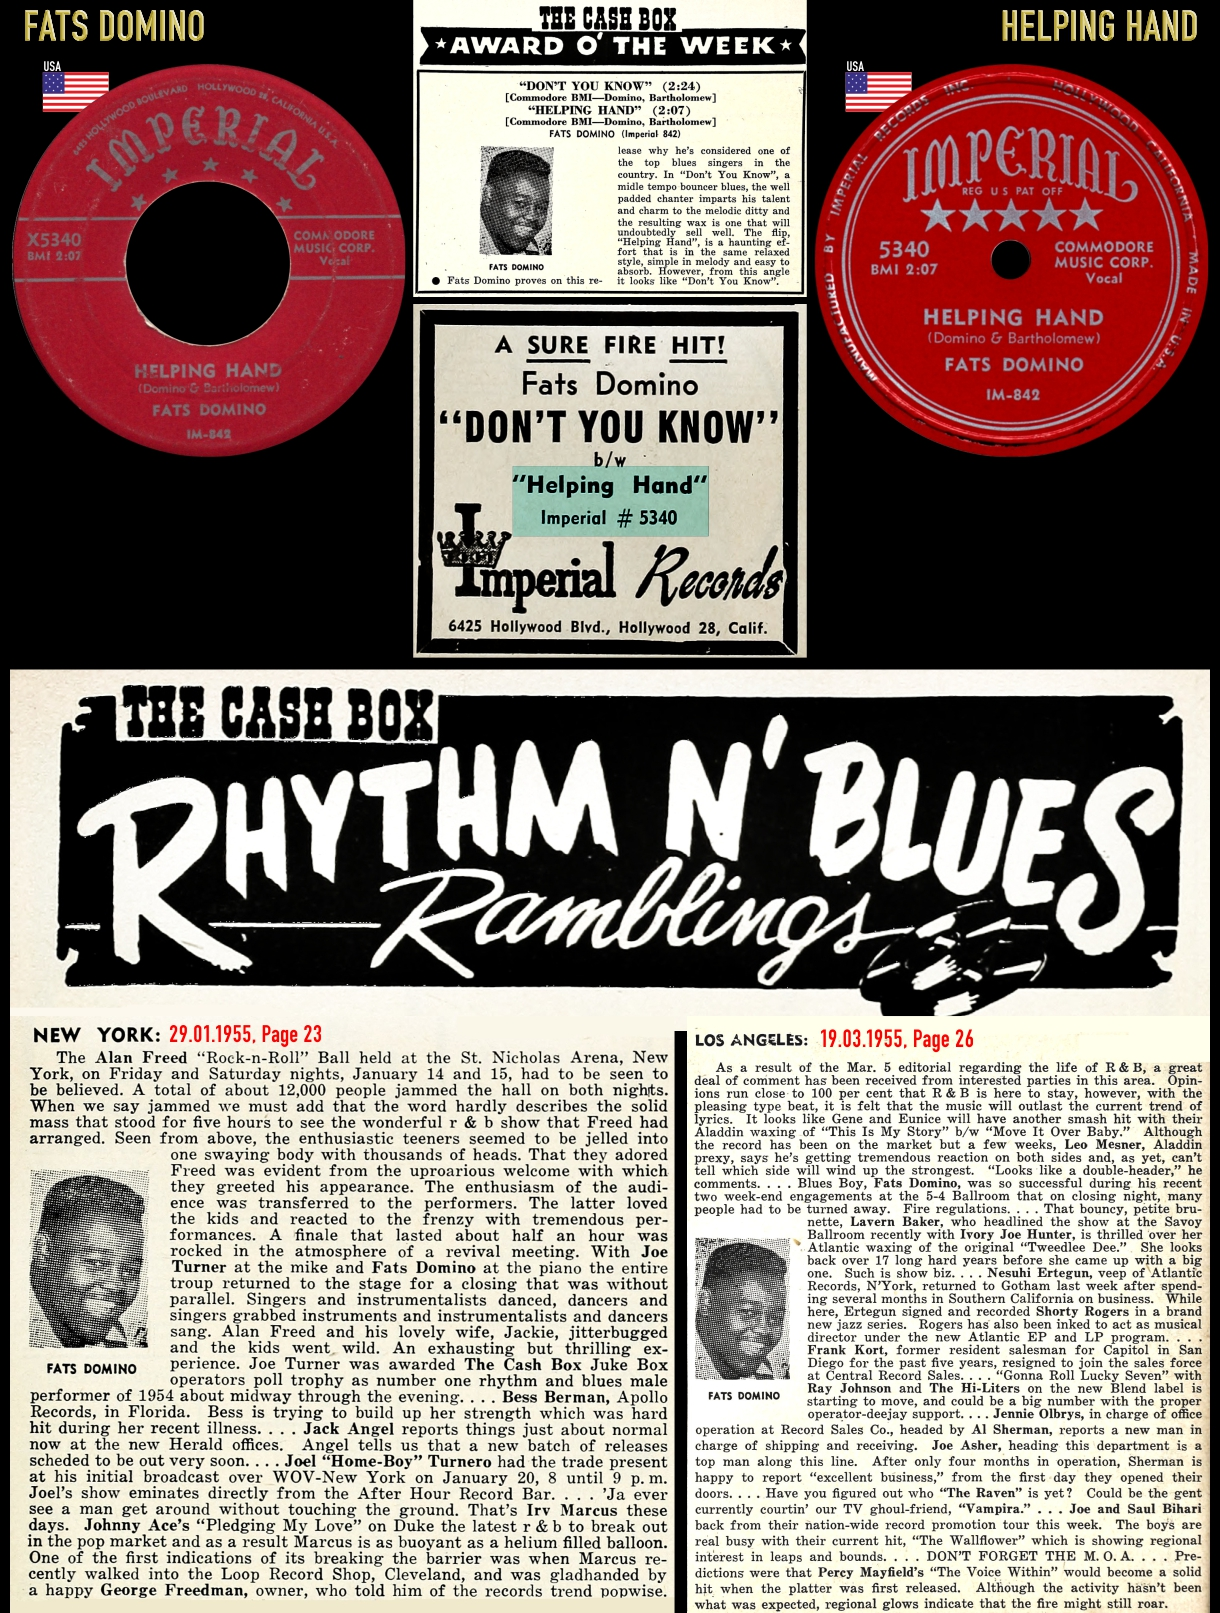 550127_Fats Domino_Helping Hand